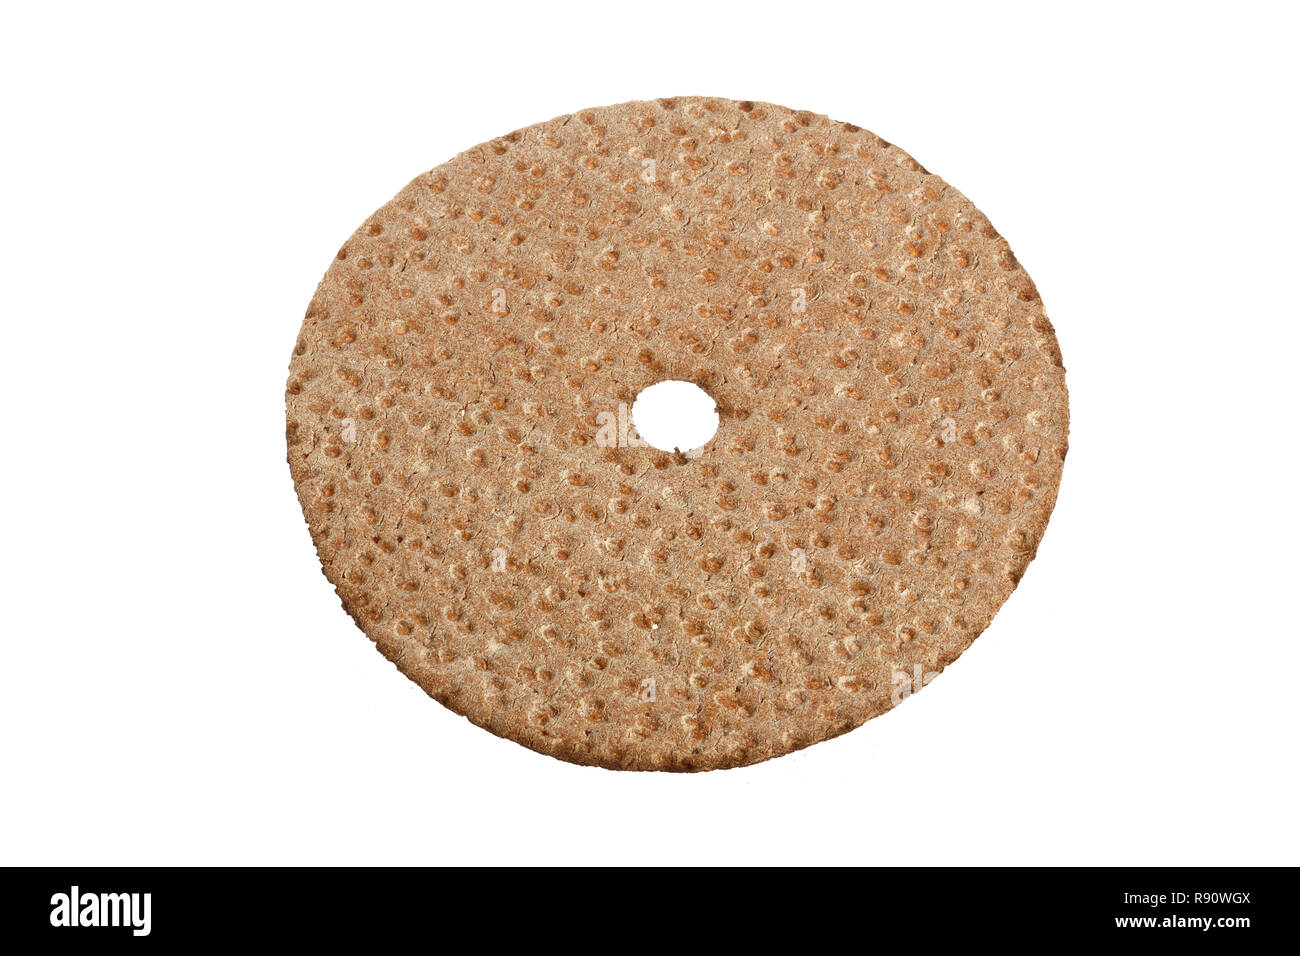 High angel view of a traditional Swedish crisp bread made of rye isolated on white background. - Stock Image